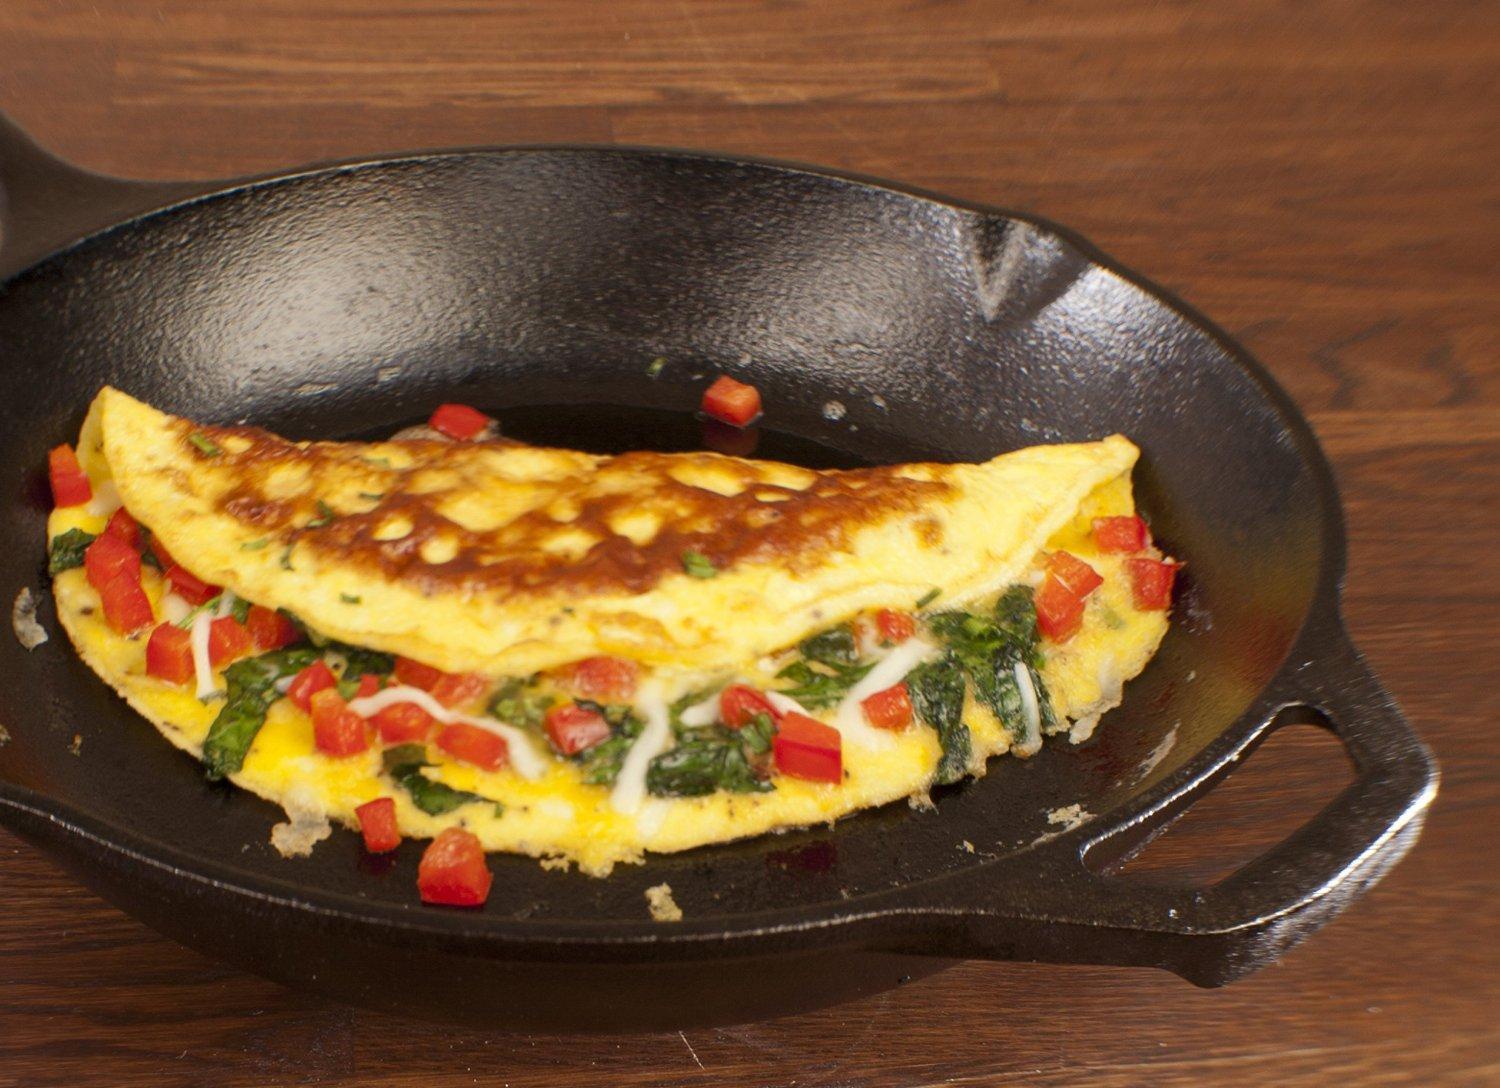 Lodge LCS3 Pre-Seasoned Cast-Iron Chef's Skillet, 10-inch